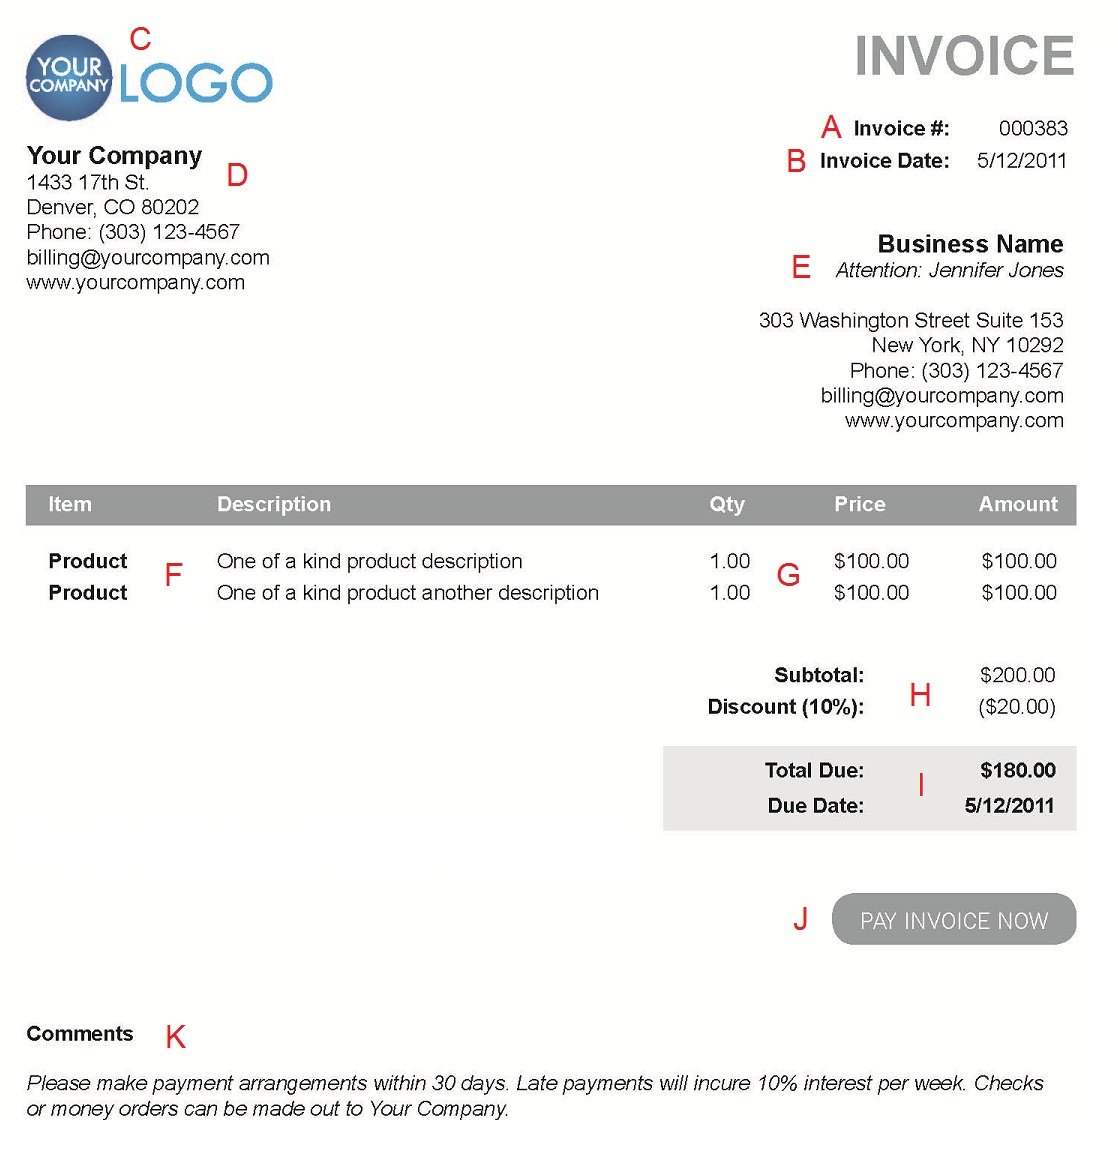 Centralasianshepherdus  Marvelous The  Different Sections Of An Electronic Payment Invoice With Gorgeous A  With Endearing Program To Create Invoices Also Sage Invoice Template Download In Addition Export Proforma Invoice Sample And Sample Of An Invoice Statement As Well As Customizable Invoice Software Additionally Express Invoice Download From Paysimplecom With Centralasianshepherdus  Gorgeous The  Different Sections Of An Electronic Payment Invoice With Endearing A  And Marvelous Program To Create Invoices Also Sage Invoice Template Download In Addition Export Proforma Invoice Sample From Paysimplecom